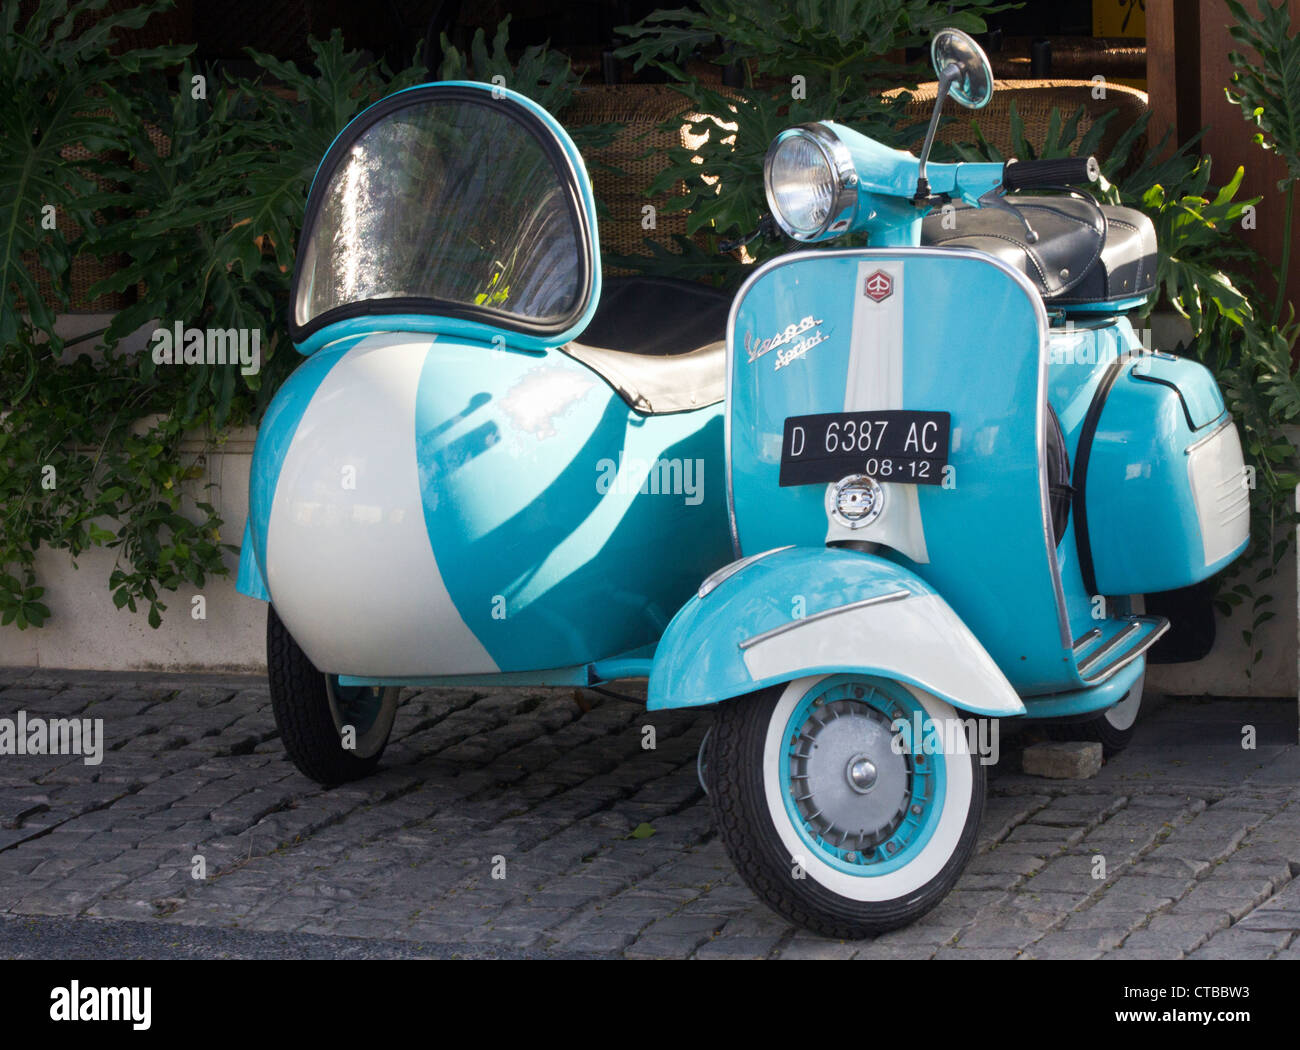 Vespa Scooter Sidecar Denpasar Bali Indonesia Stock Photo